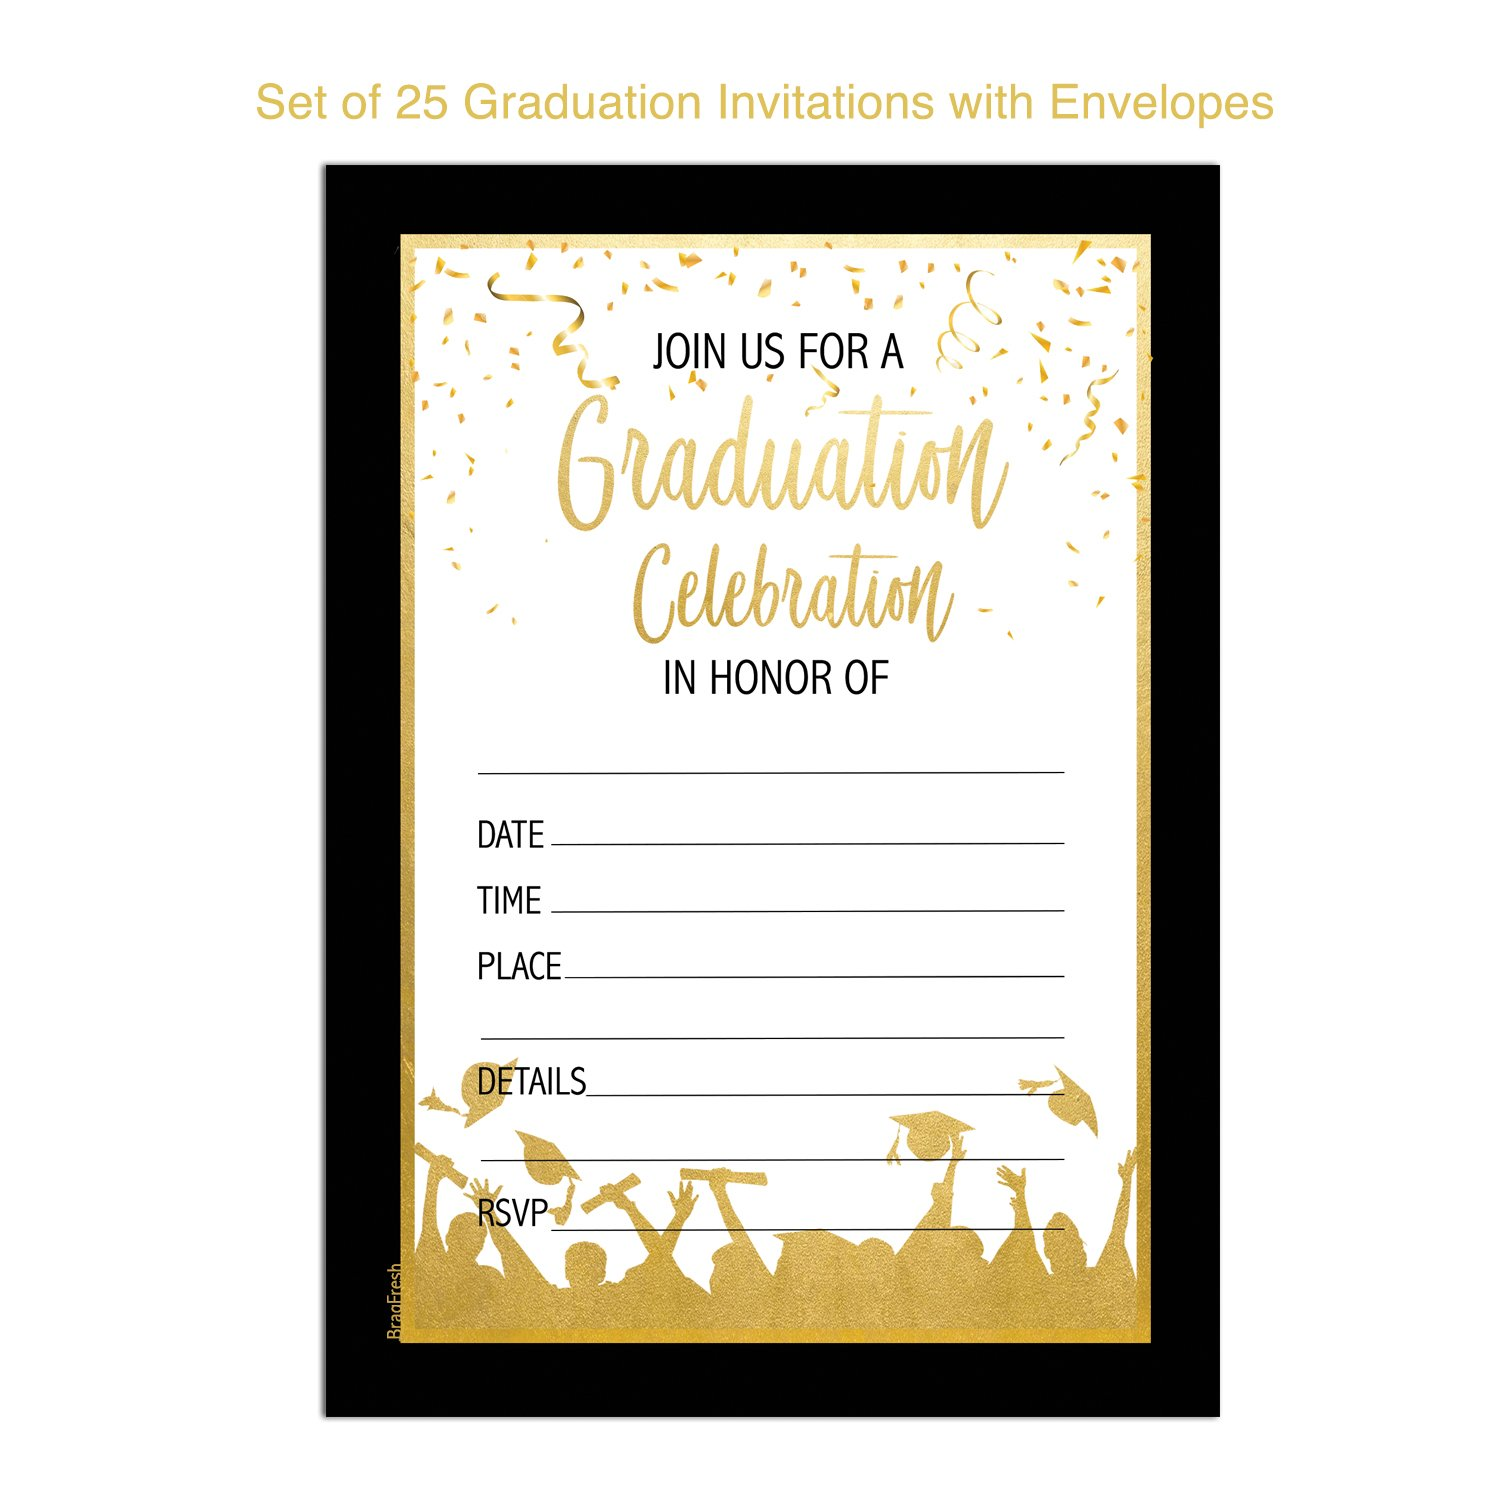 25 Graduation Party Invitations - Graduation Celebration Party Invites High School College Graduate by Brag Fresh (Image #2)